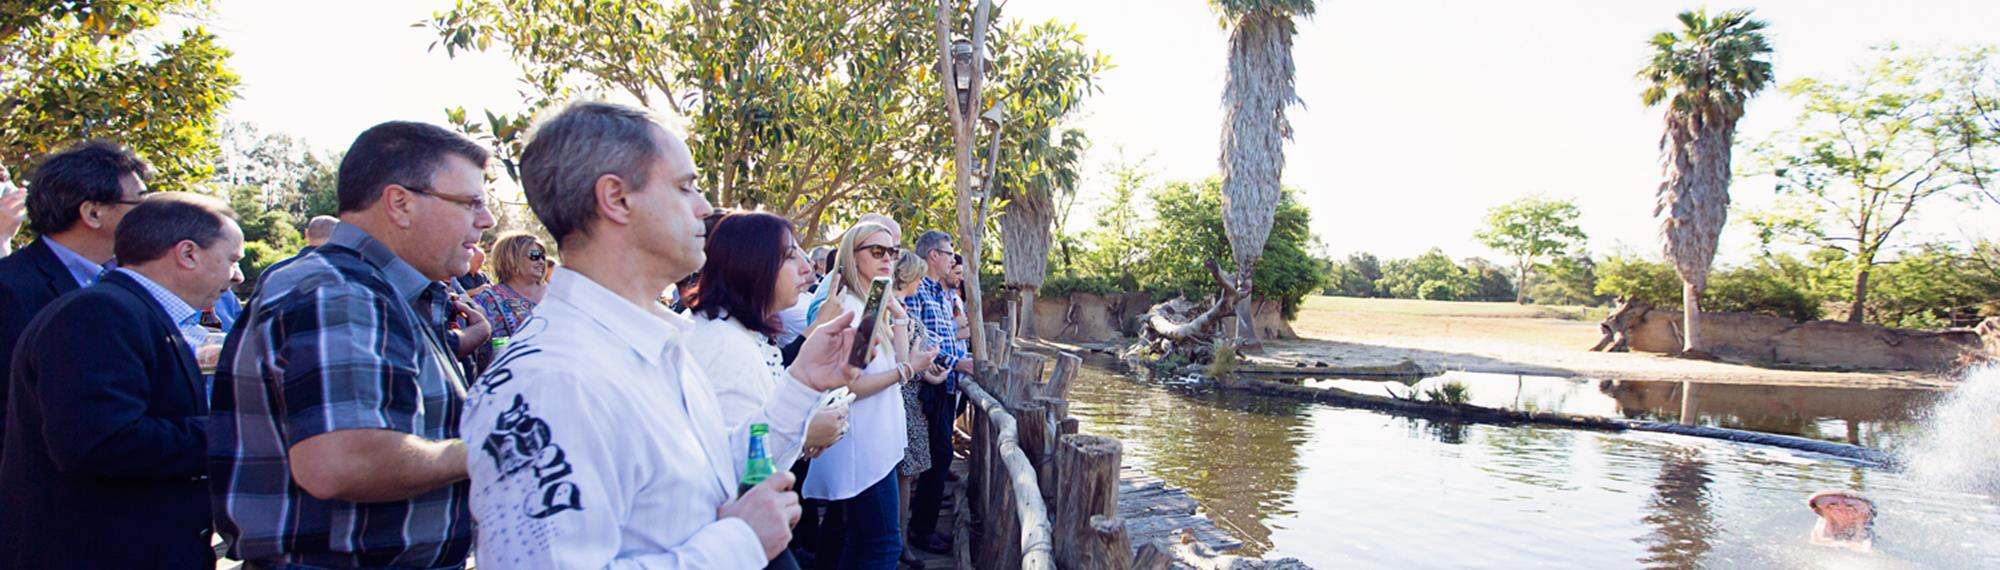 Crowd of visitors standing on the boardwalk taking photos over the fence of a hippopotamus submerged in the water. Only the hippo's open mouth can be seen above the water.